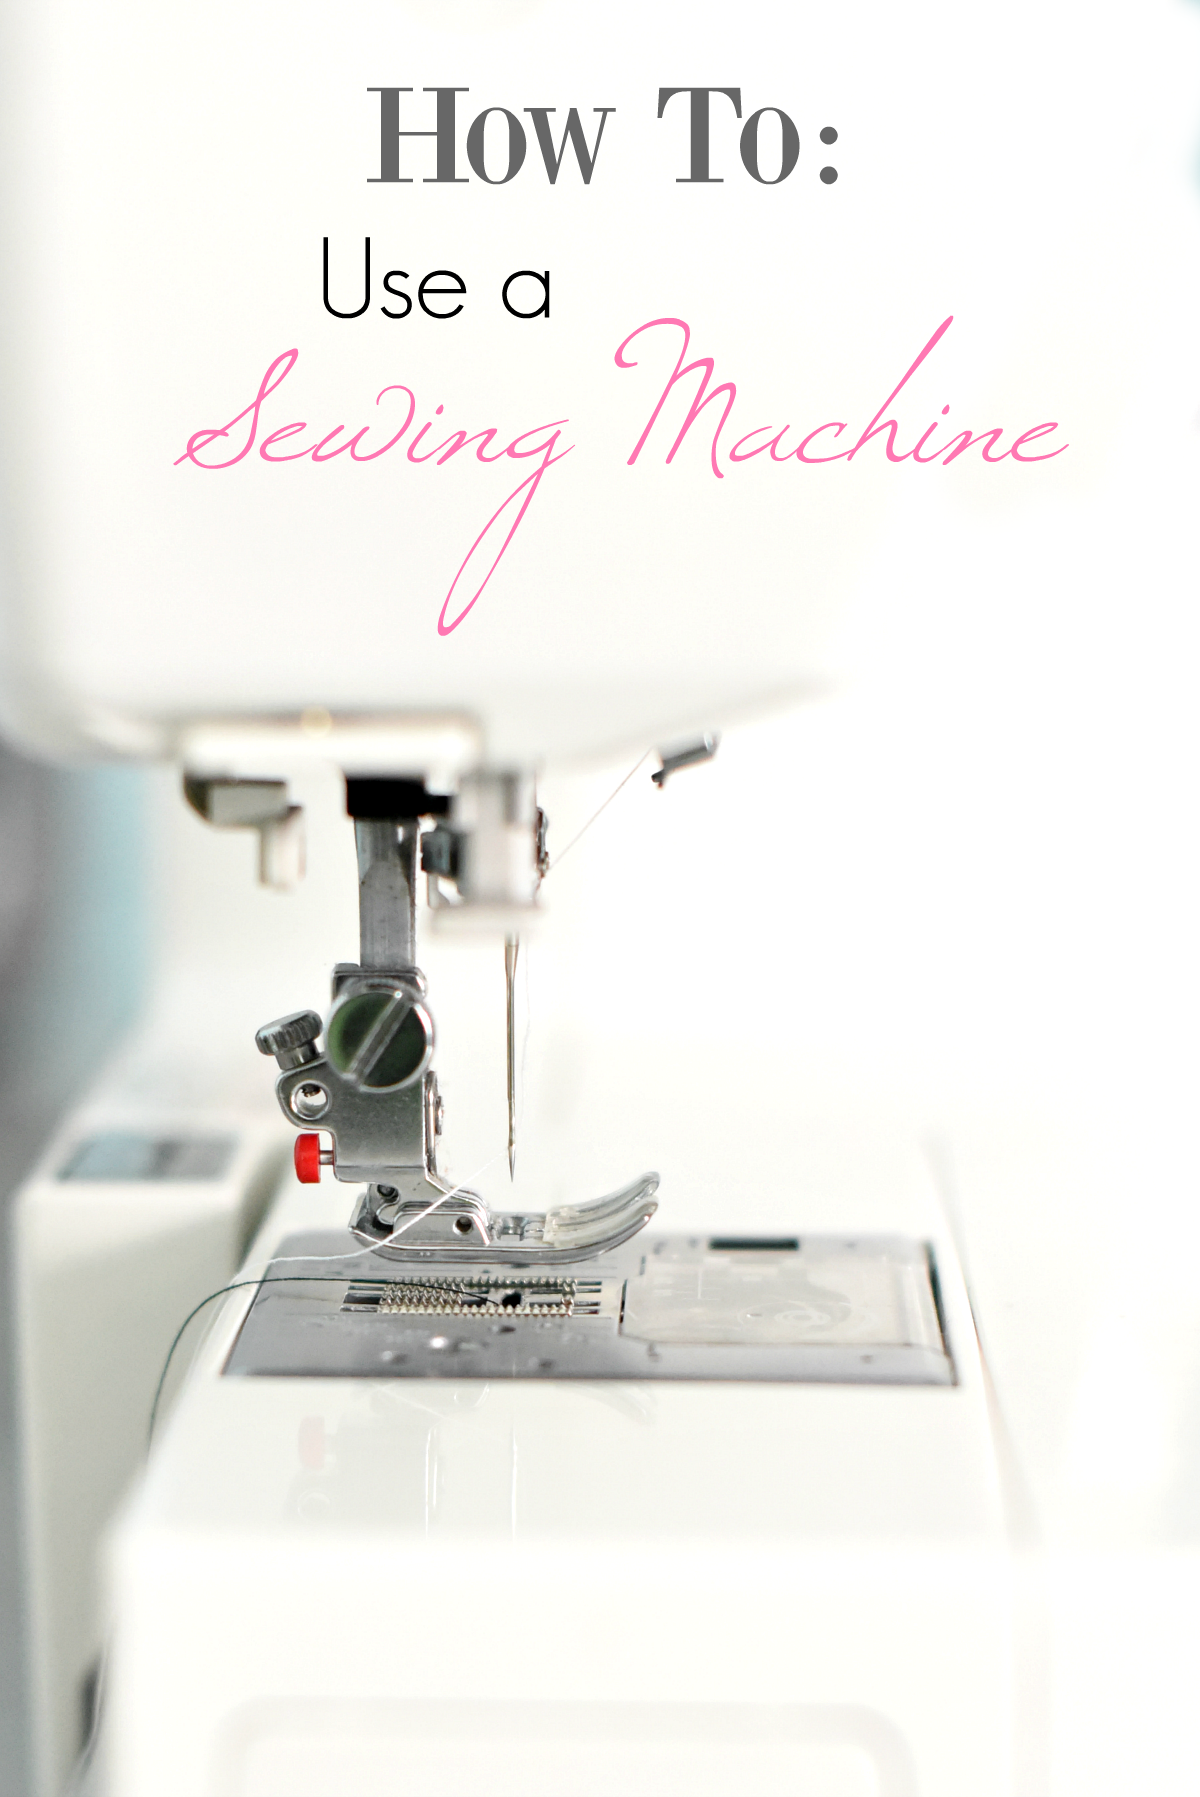 How To Use a Sewing Machine: From Threading to What are All Those Gadgets? Learn to use a sewing machine with this easy to follow tutorial. #sewing #learntosew